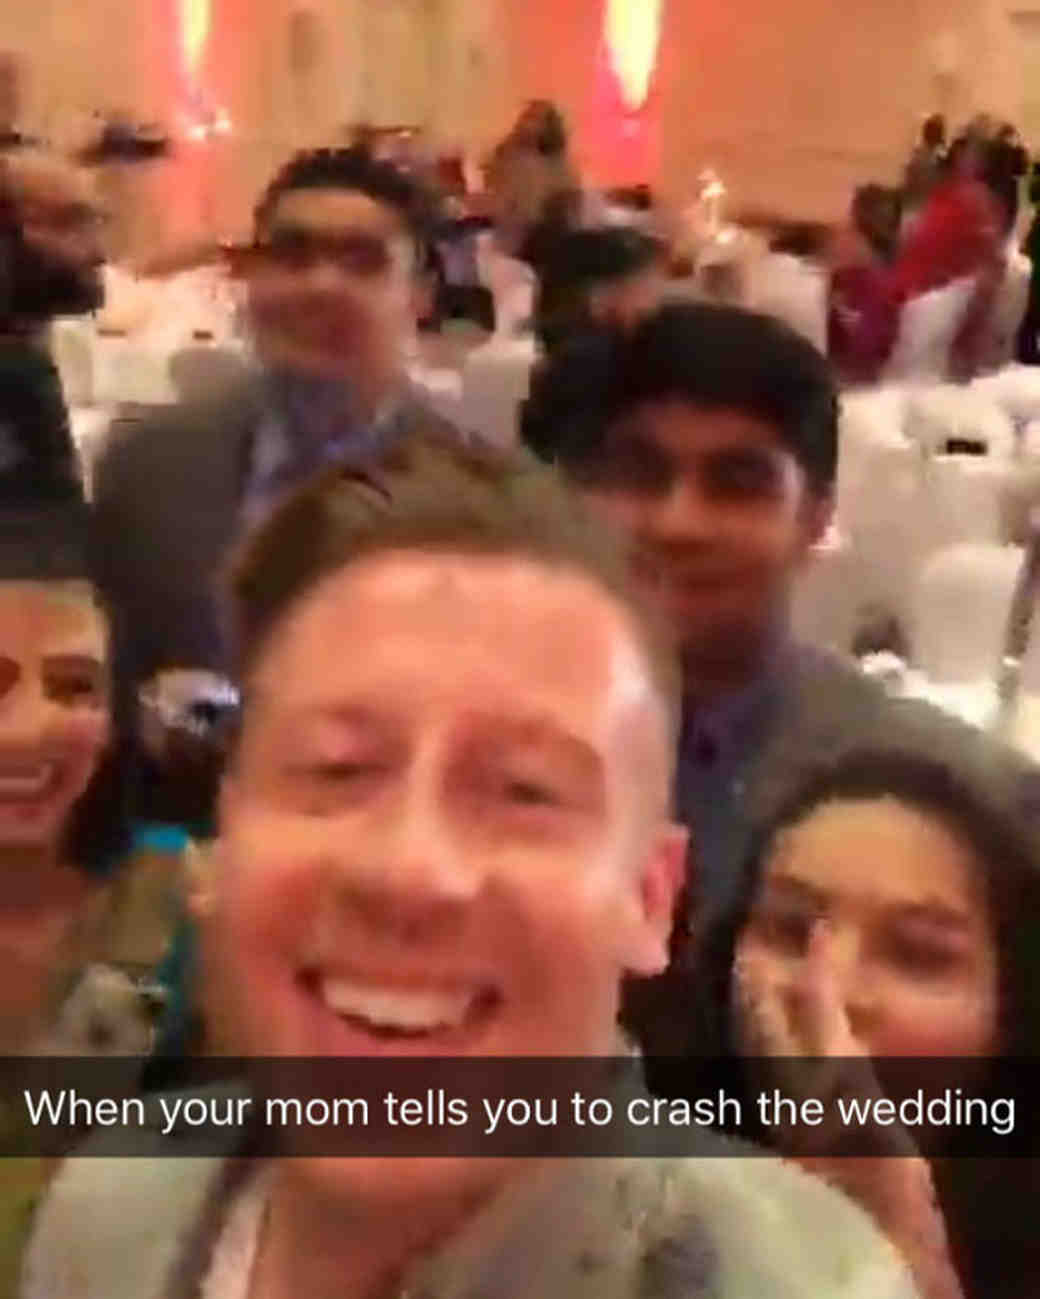 macklemore-wedding-crasher-0516.jpg